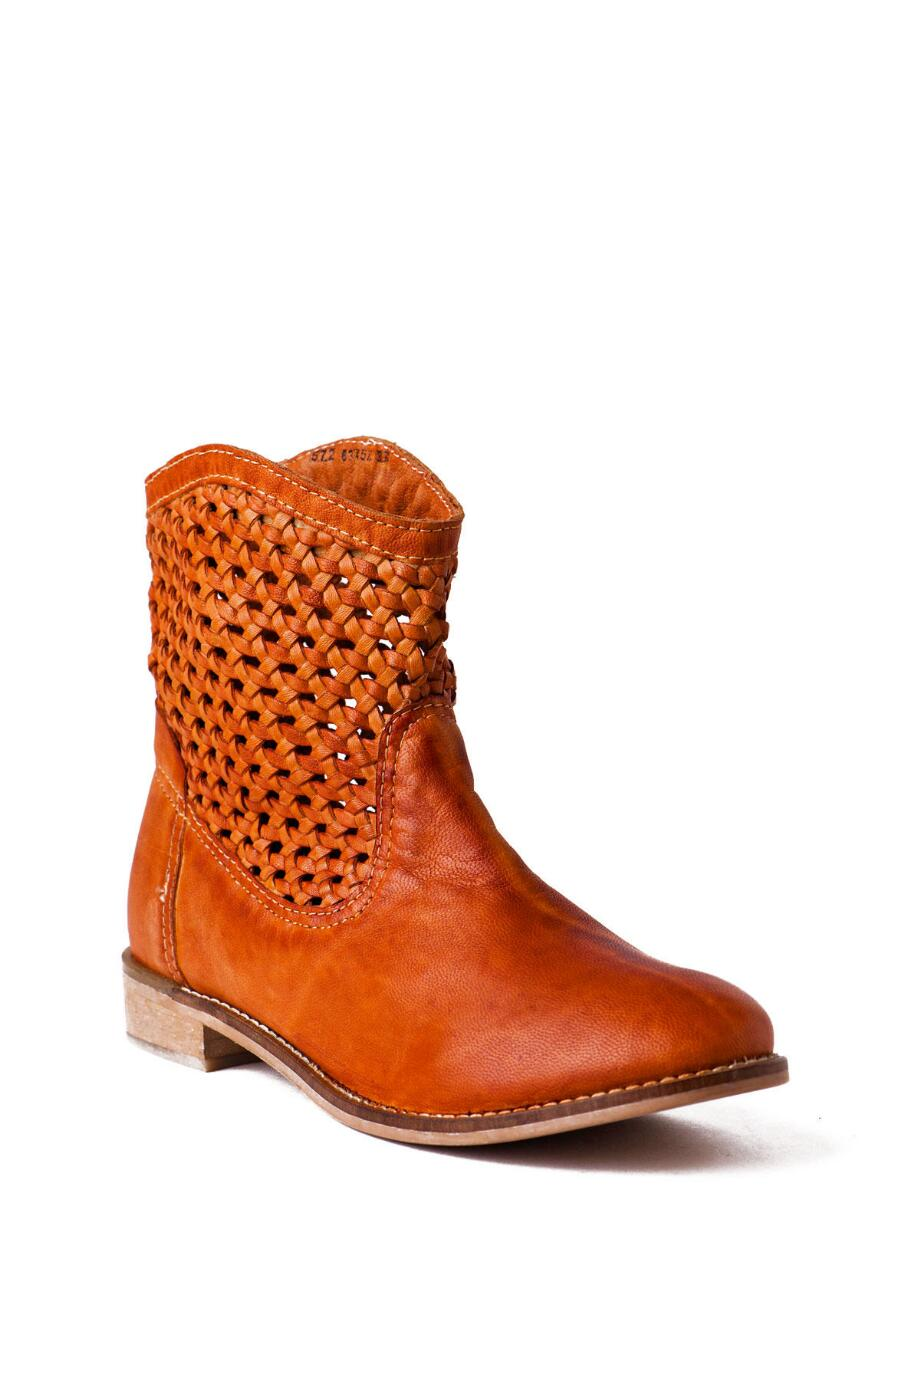 Seychelles Shoes, Knock at the Door Leather Bootie